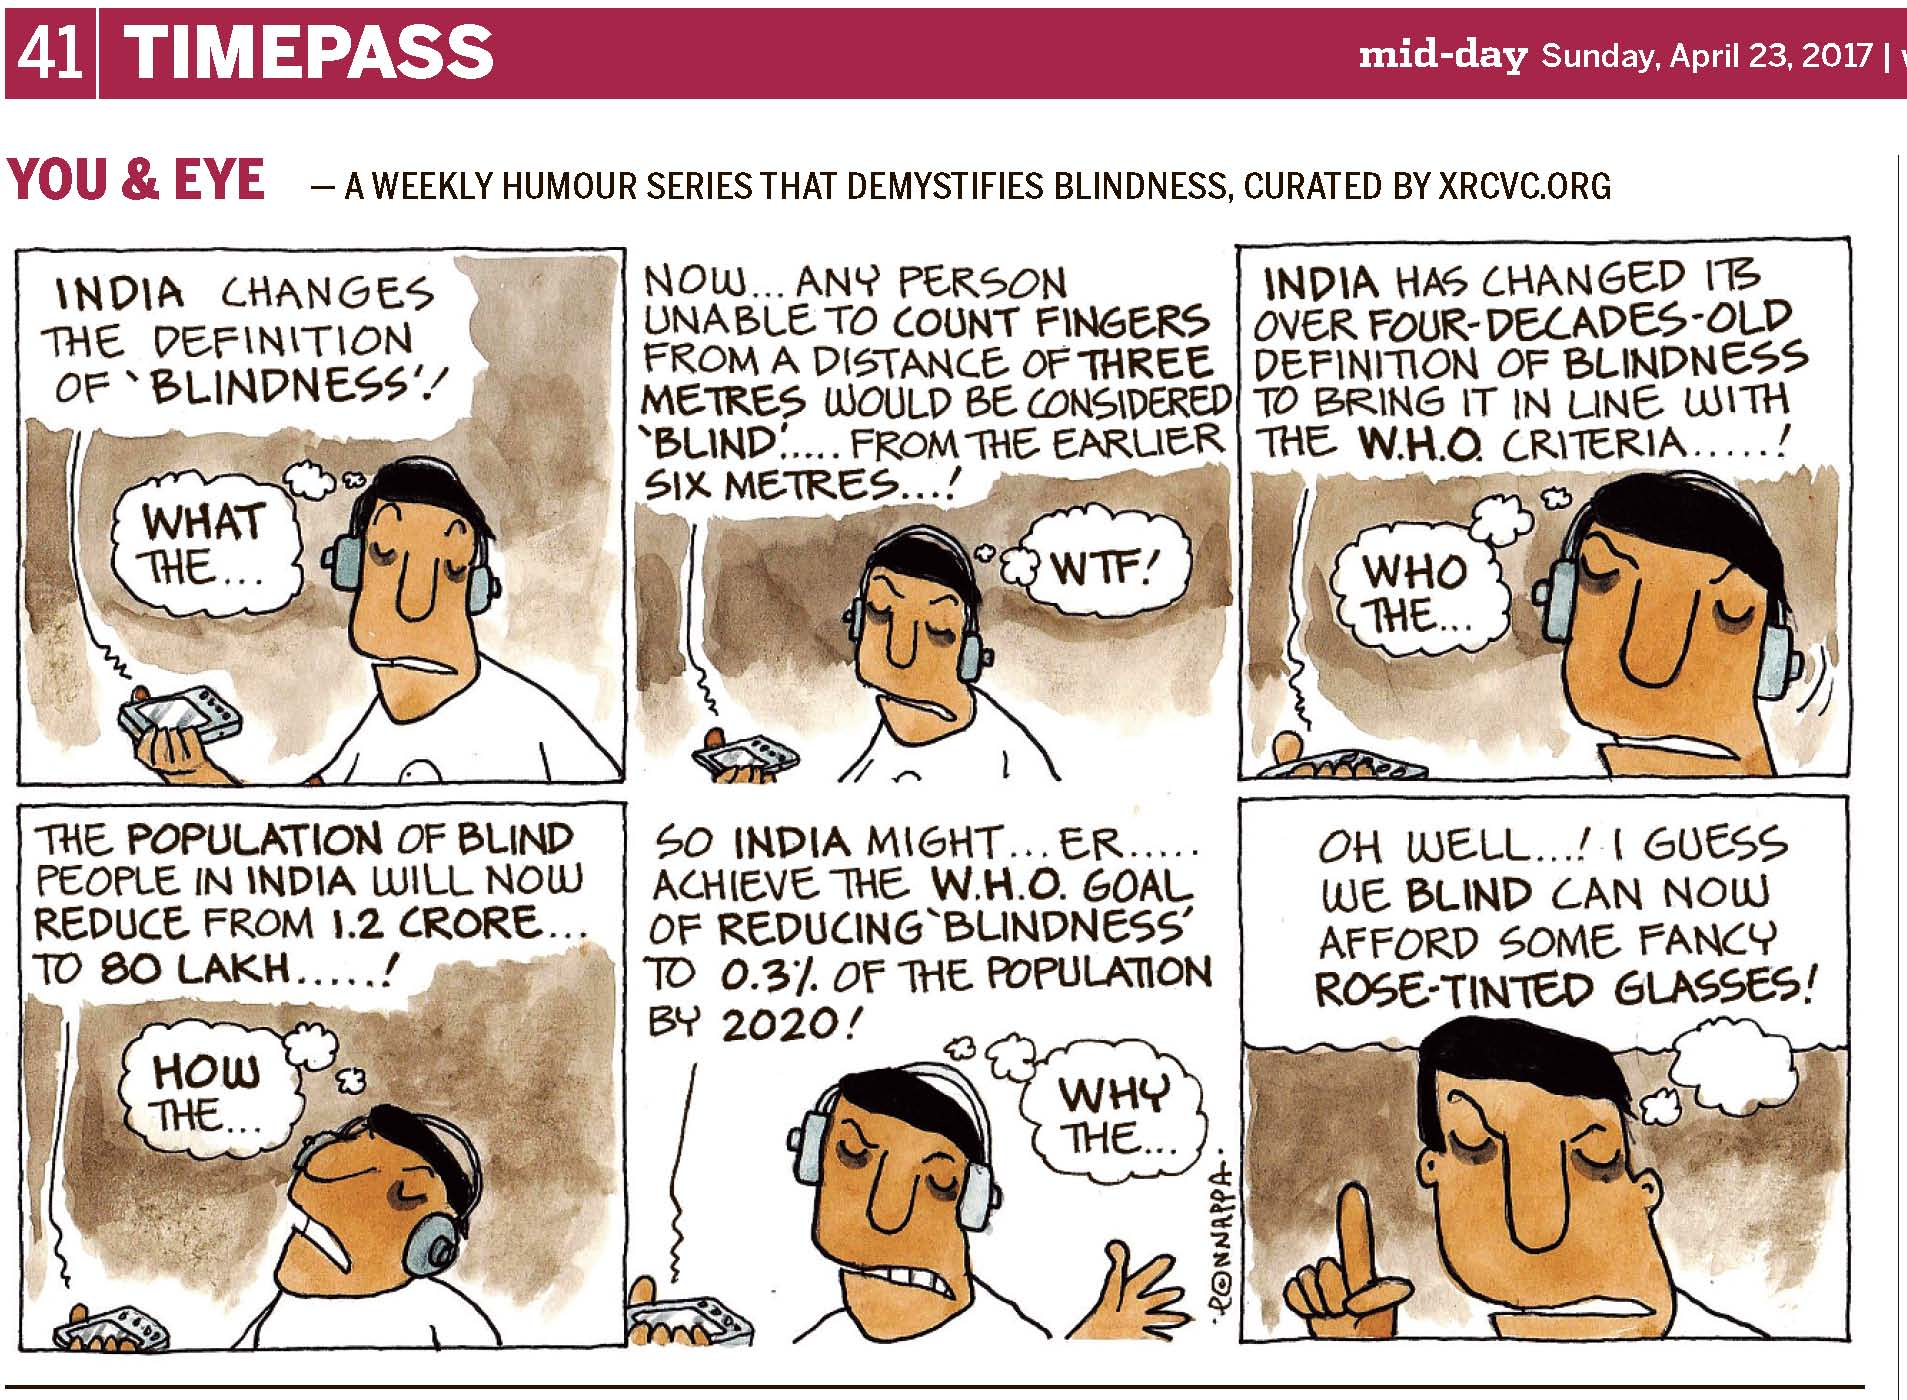 (top-left) 41 | TIMEPASS (top-right) mid-day Sunday, April 23, 2017 